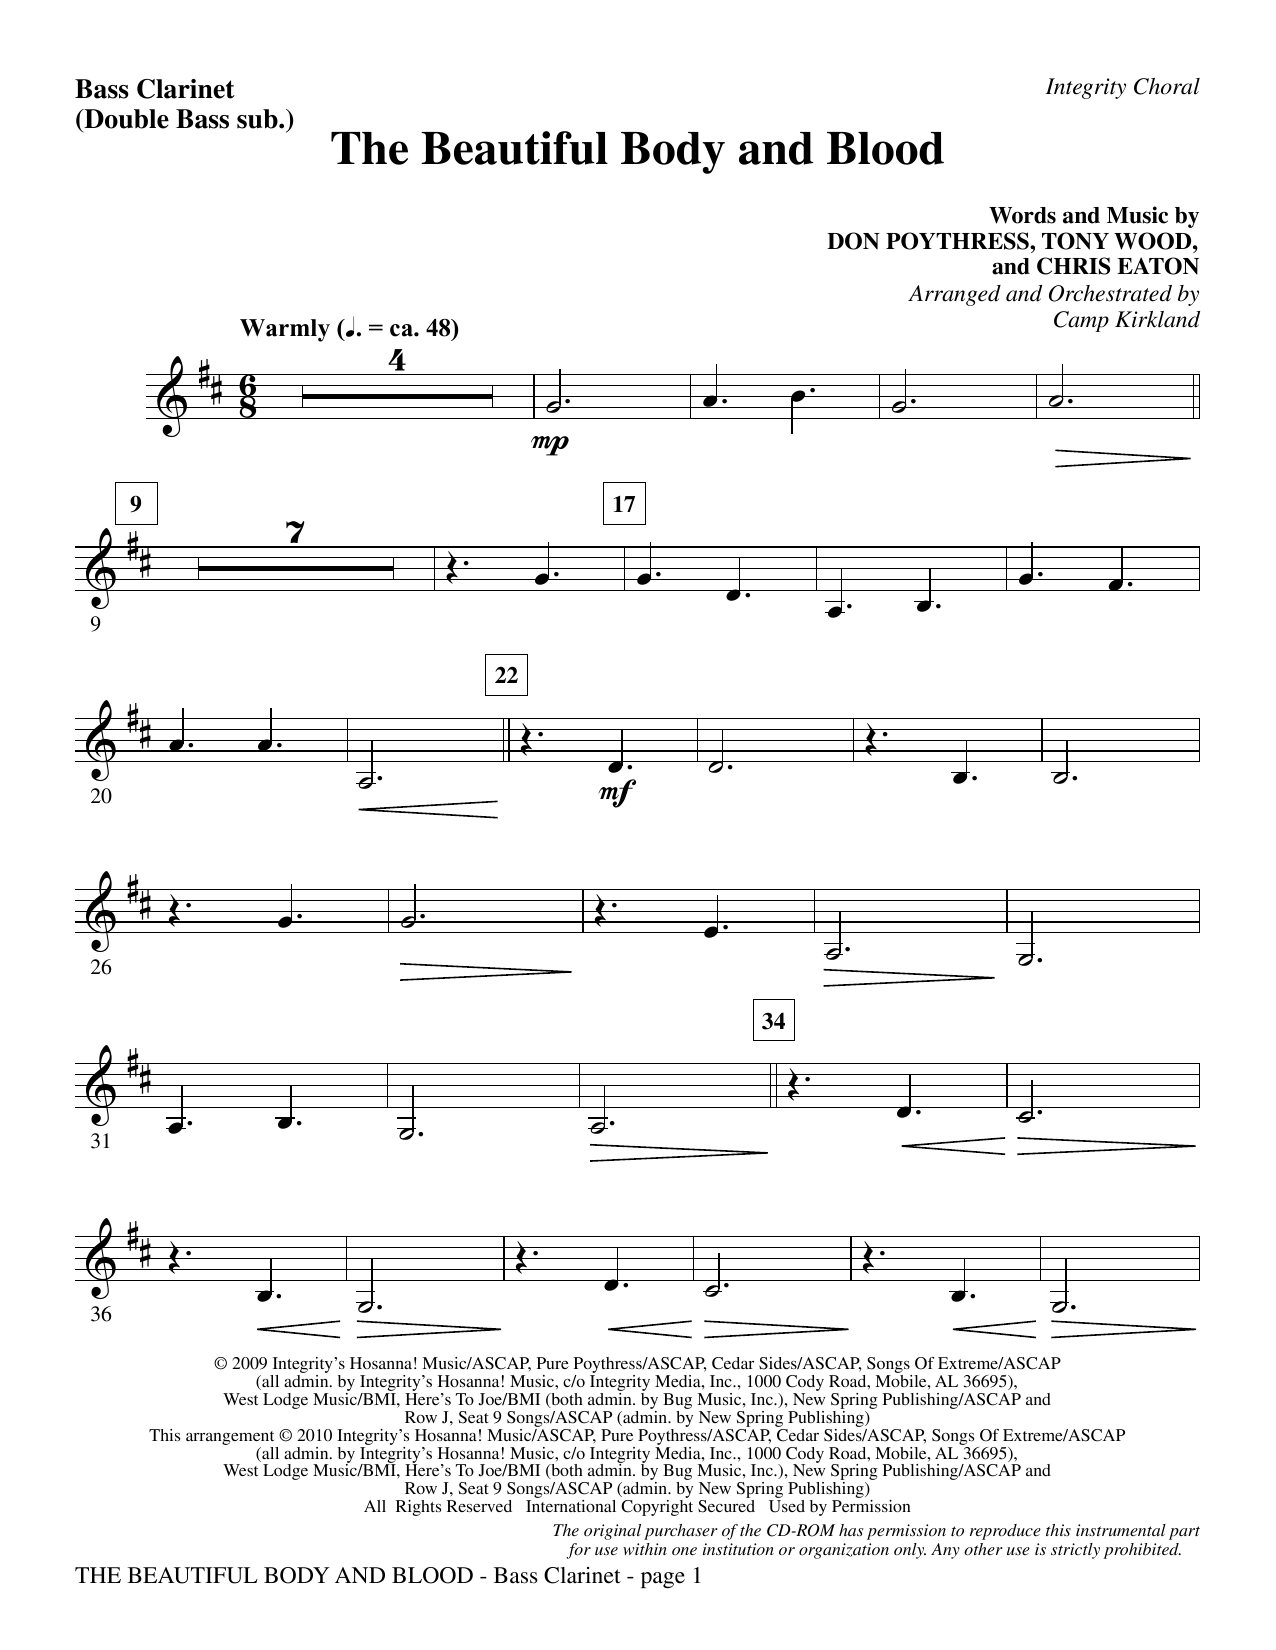 The Beautiful Body And Blood - Bass Clarinet (sub. dbl bass) Sheet Music